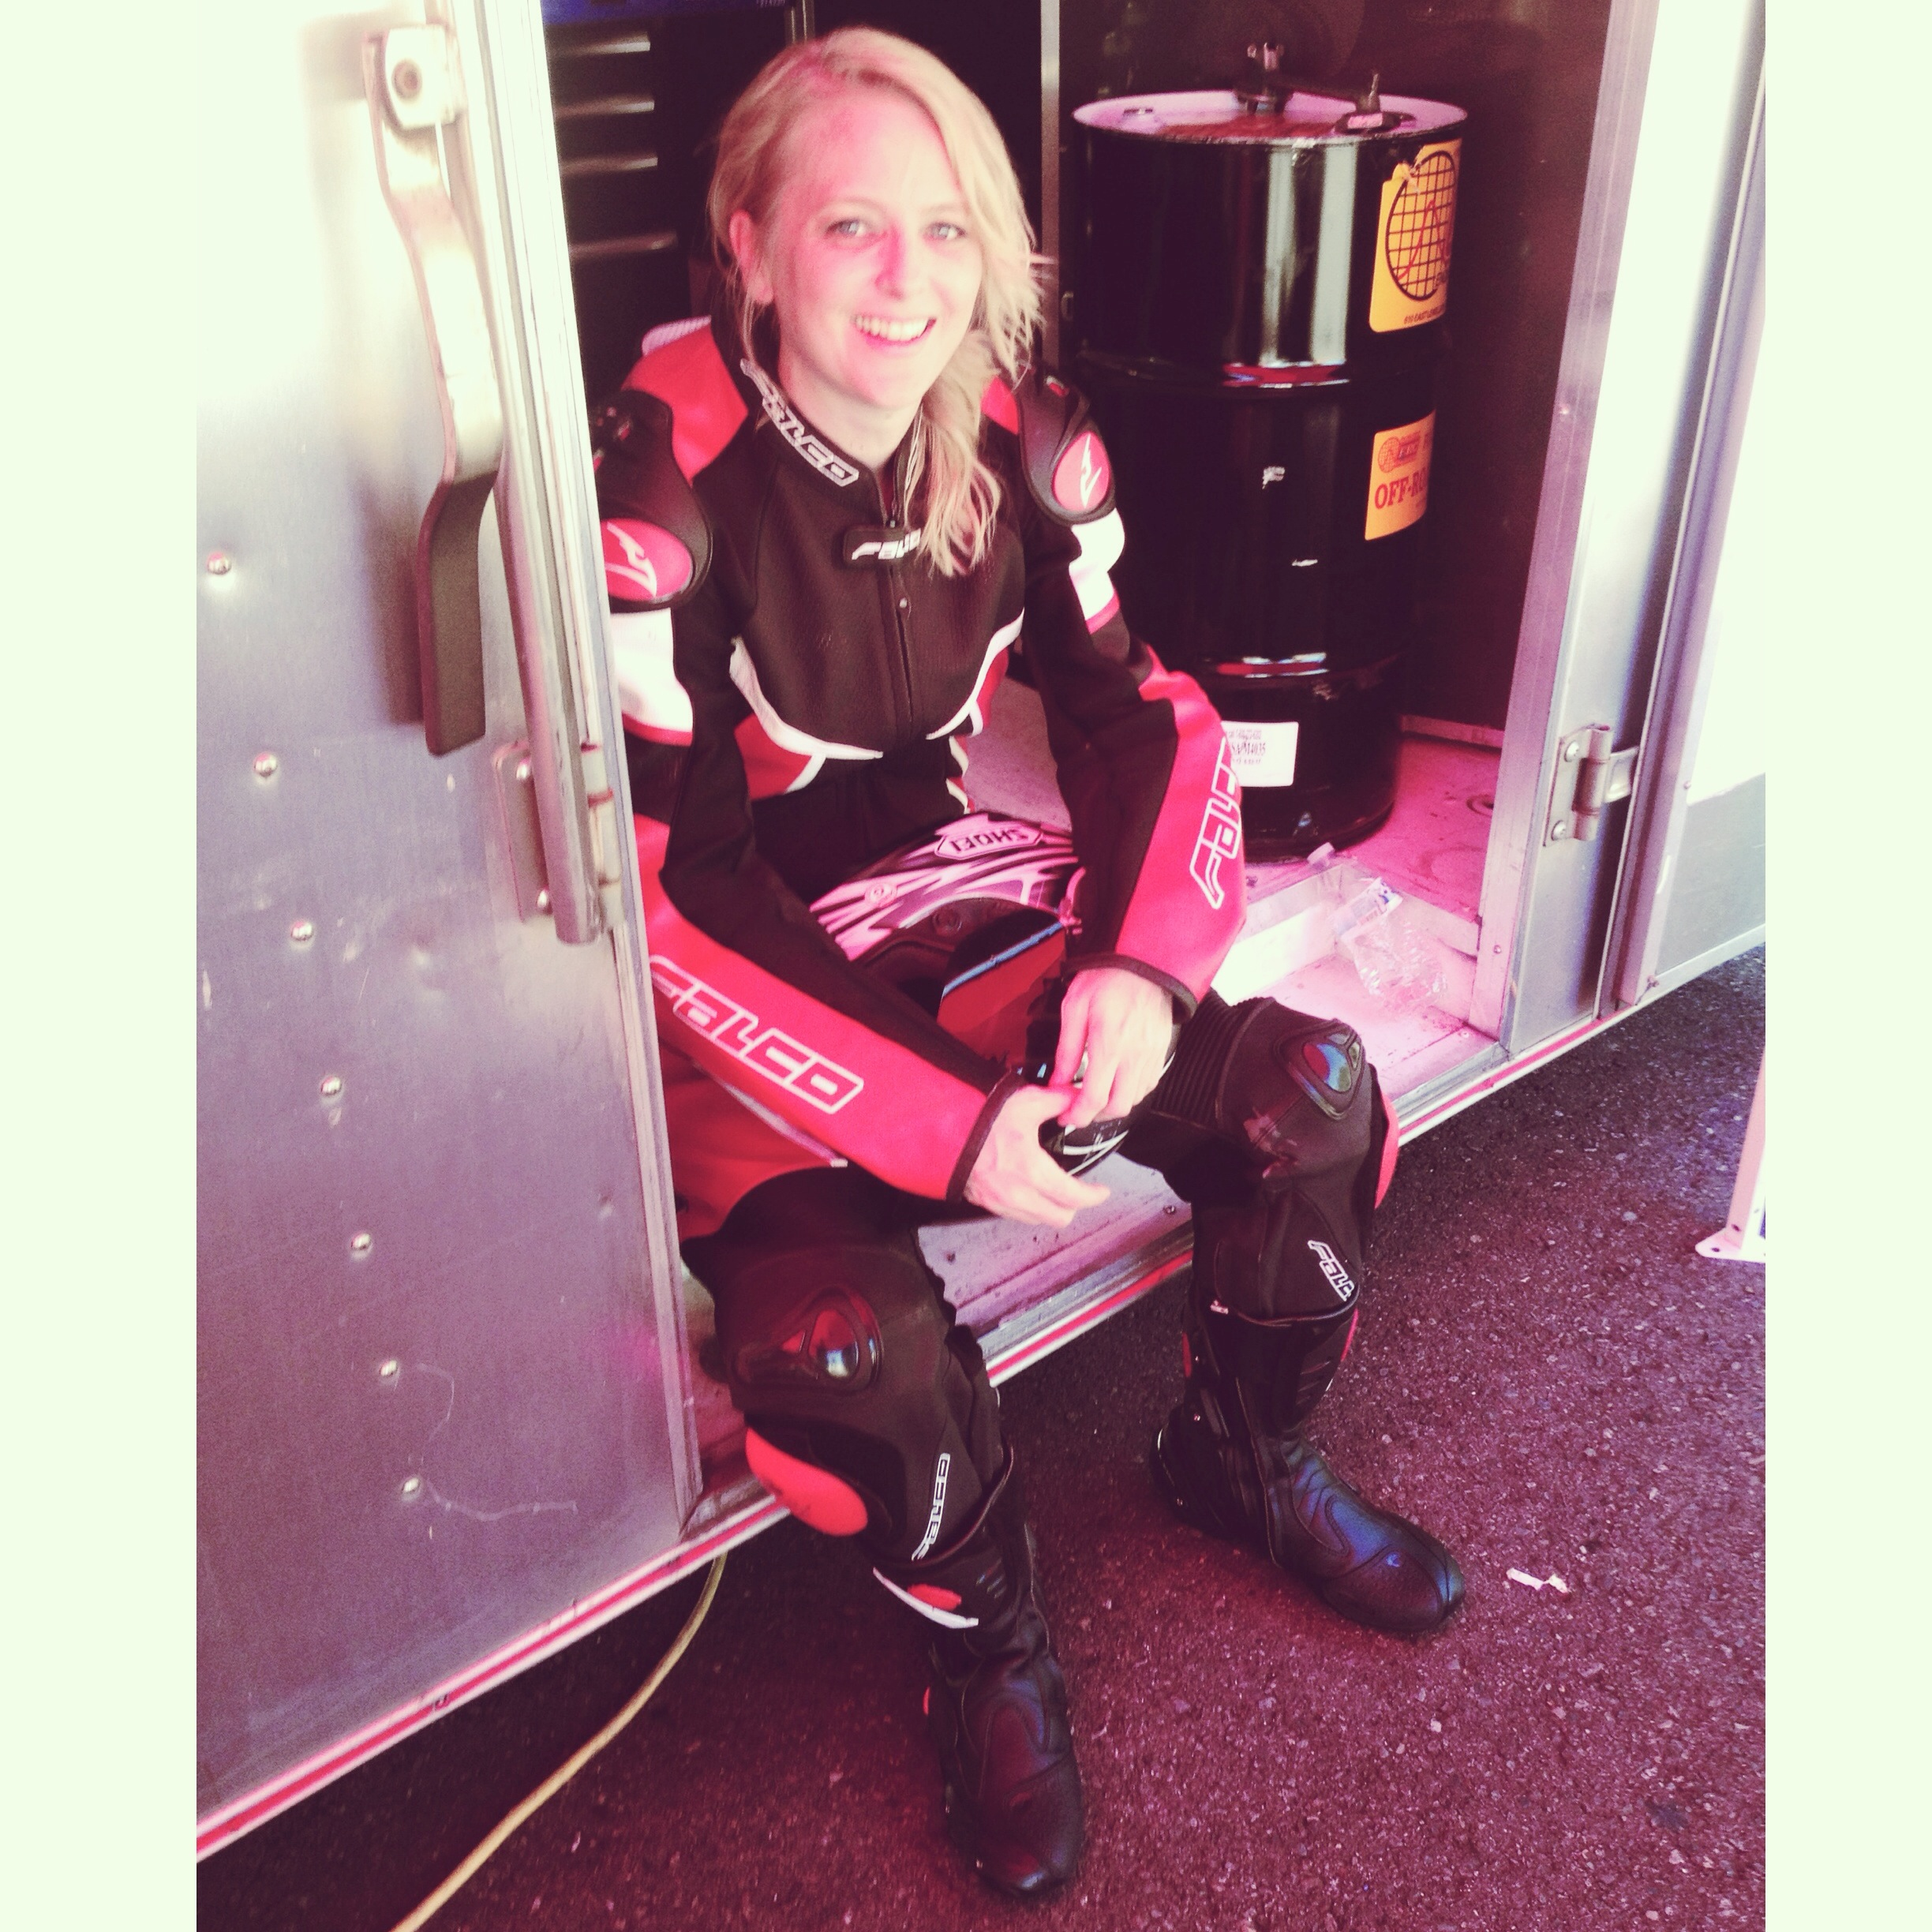 LaRae Lobdell before her first superbike ride with Danny Eslick.